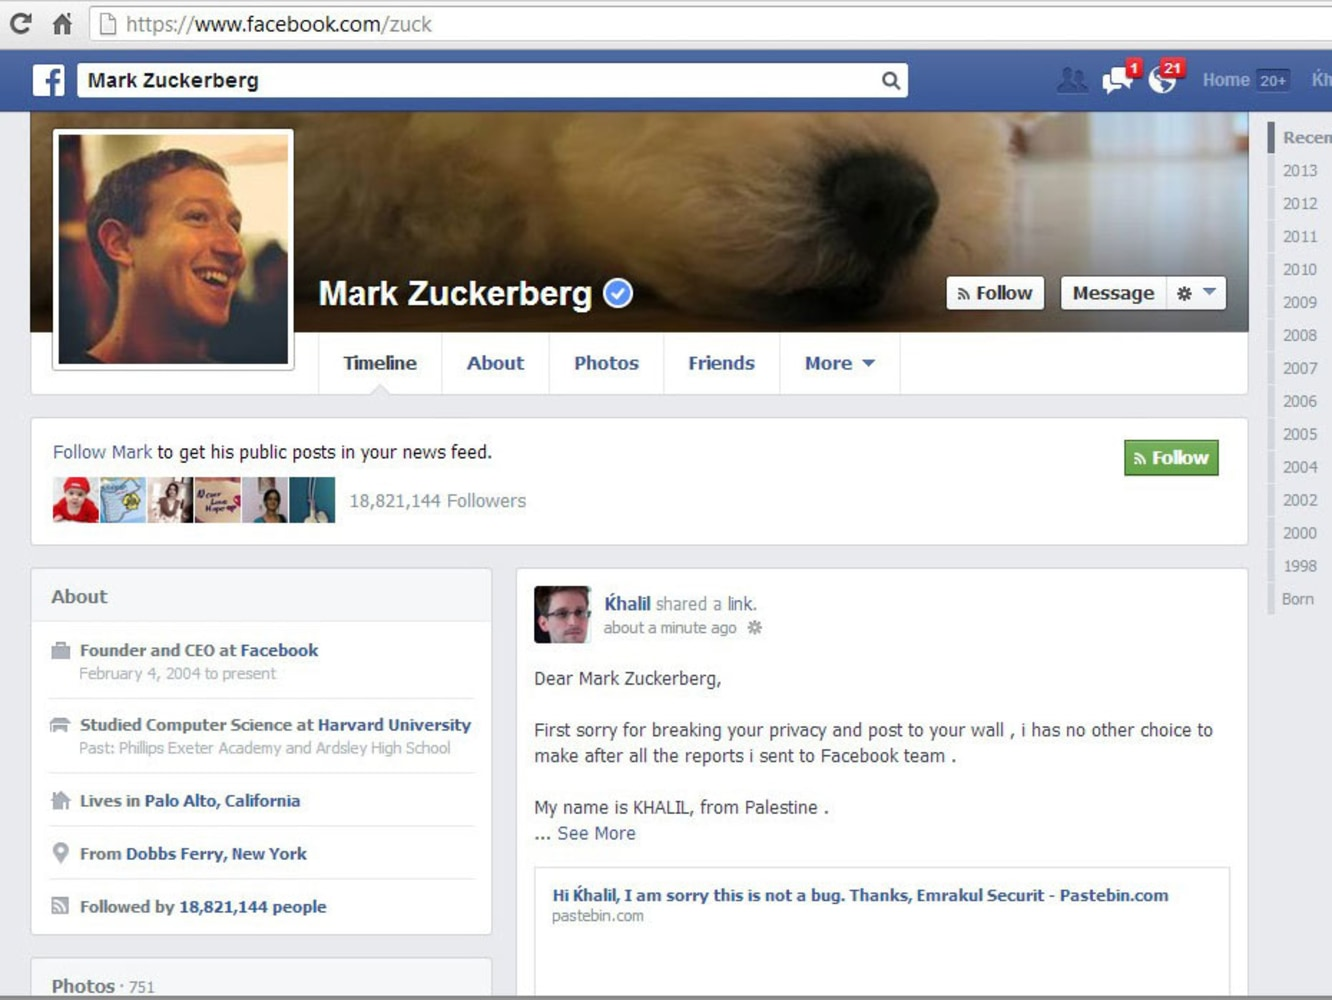 One way to get Facebook's attention: Hack Zuckerberg's personal page